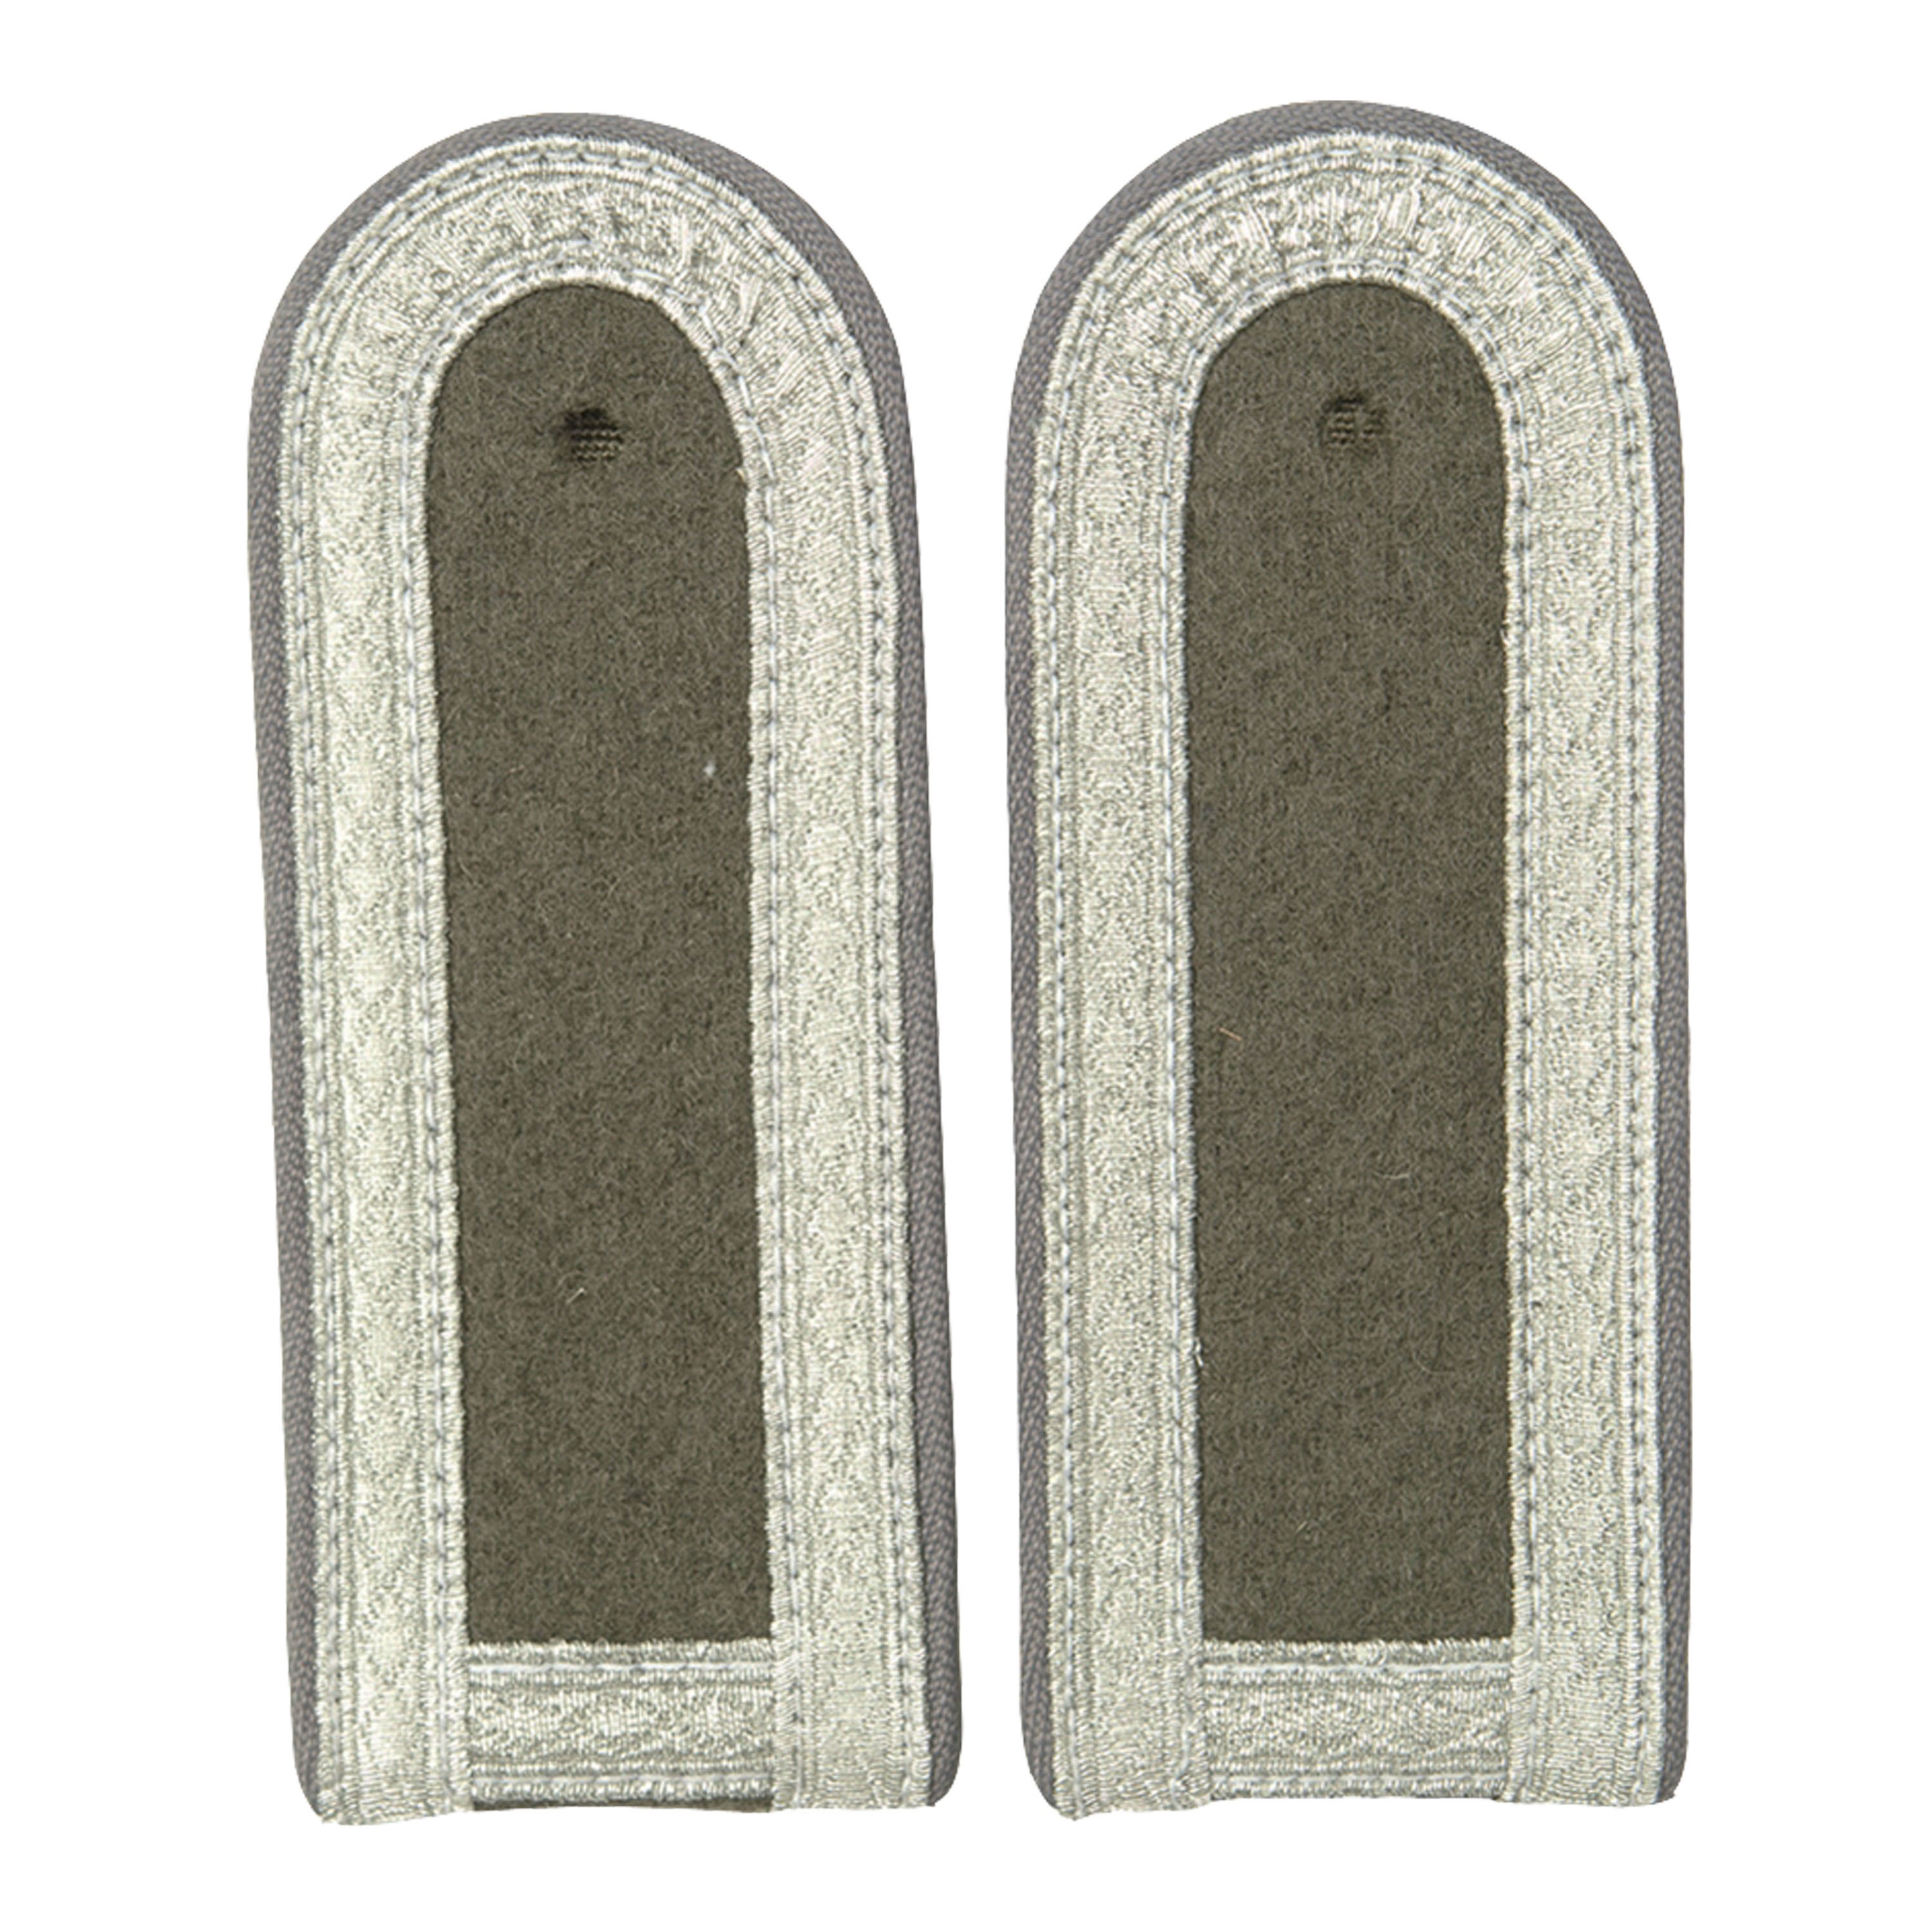 NVA Shoulder Tabs with Pipping Unterfeldwebel gray